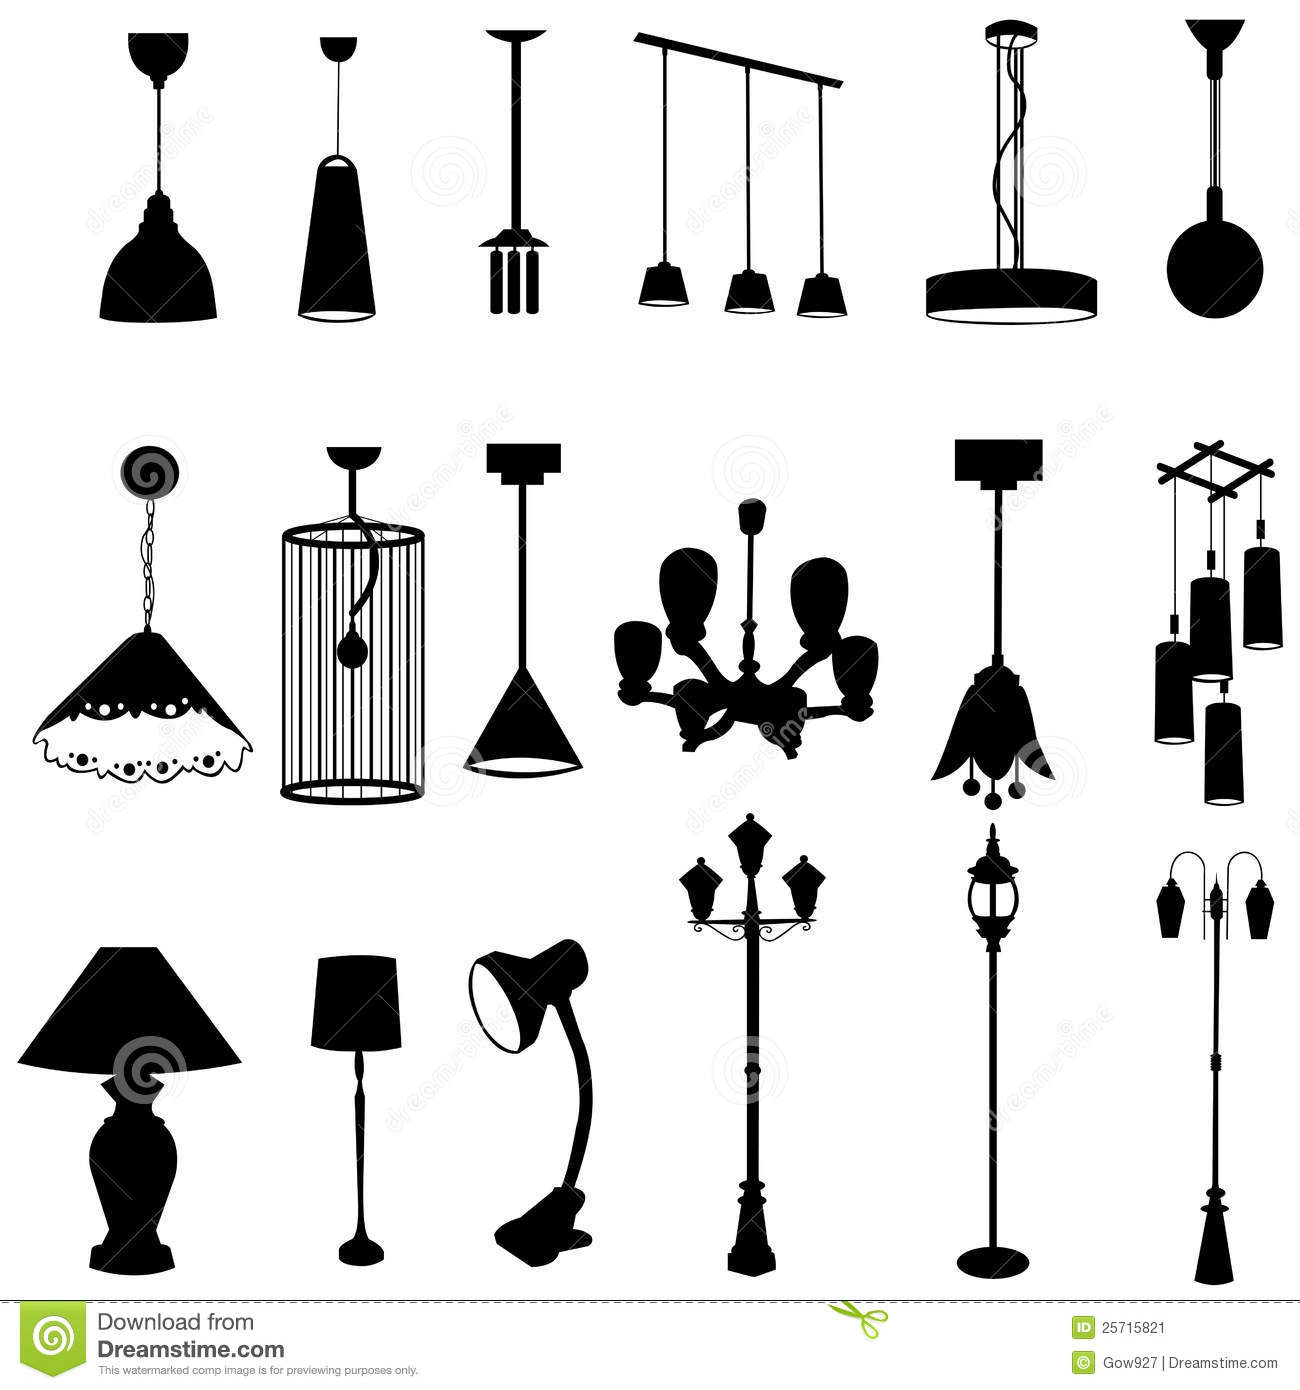 Hanging Lamp Vector: Sets Of Silhouette Lamps Stock Vector. Illustration Of